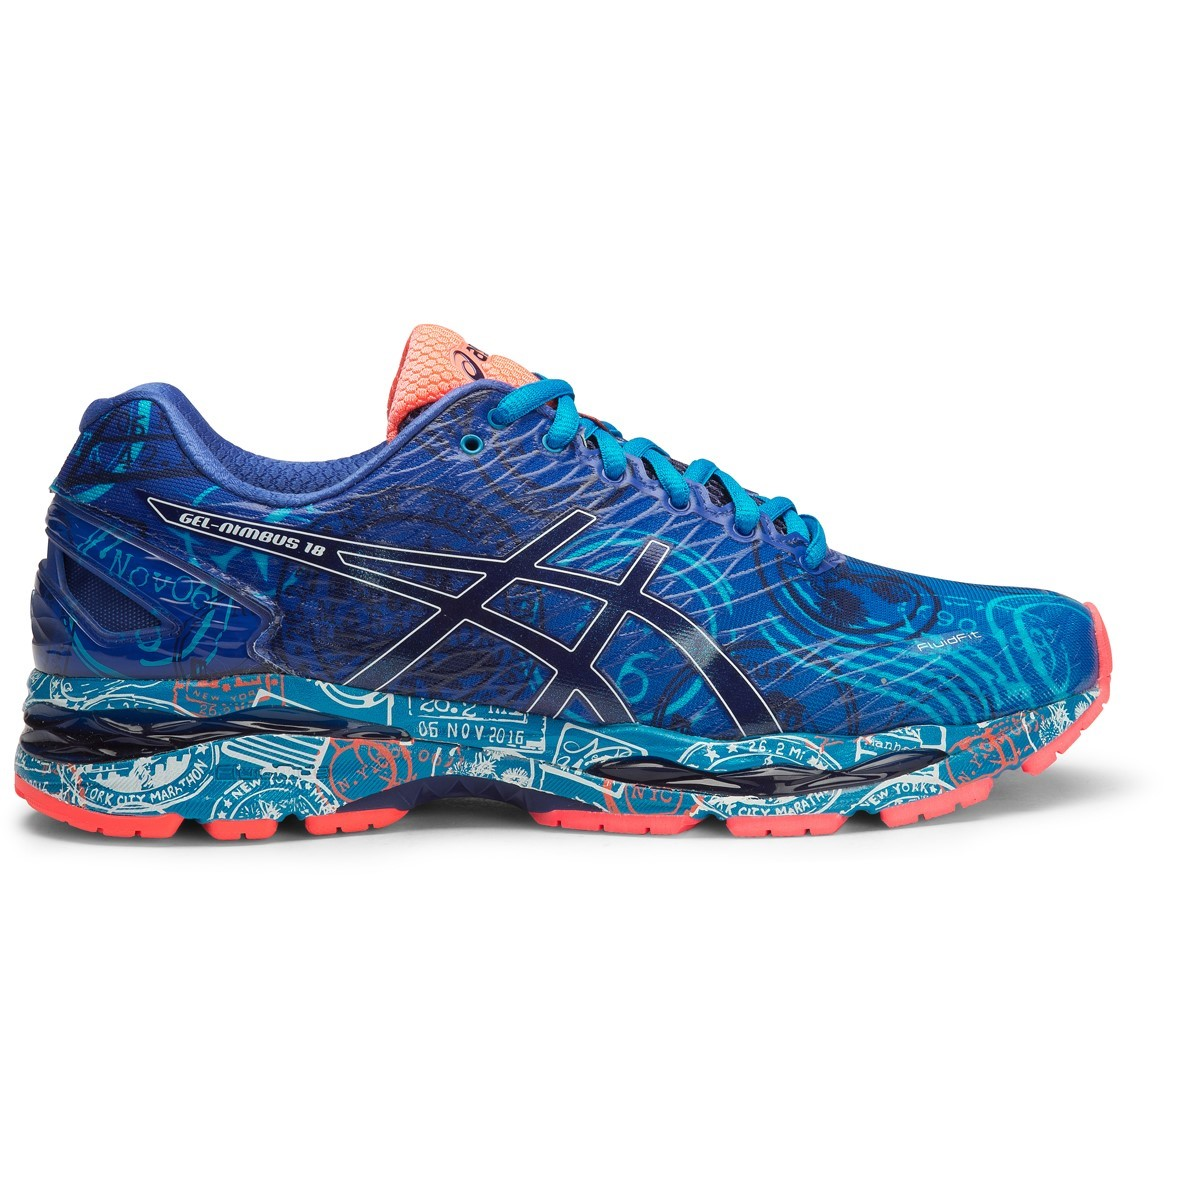 asics gel nimbus 18 nyc limited edition mens running shoes new york online sportitude. Black Bedroom Furniture Sets. Home Design Ideas